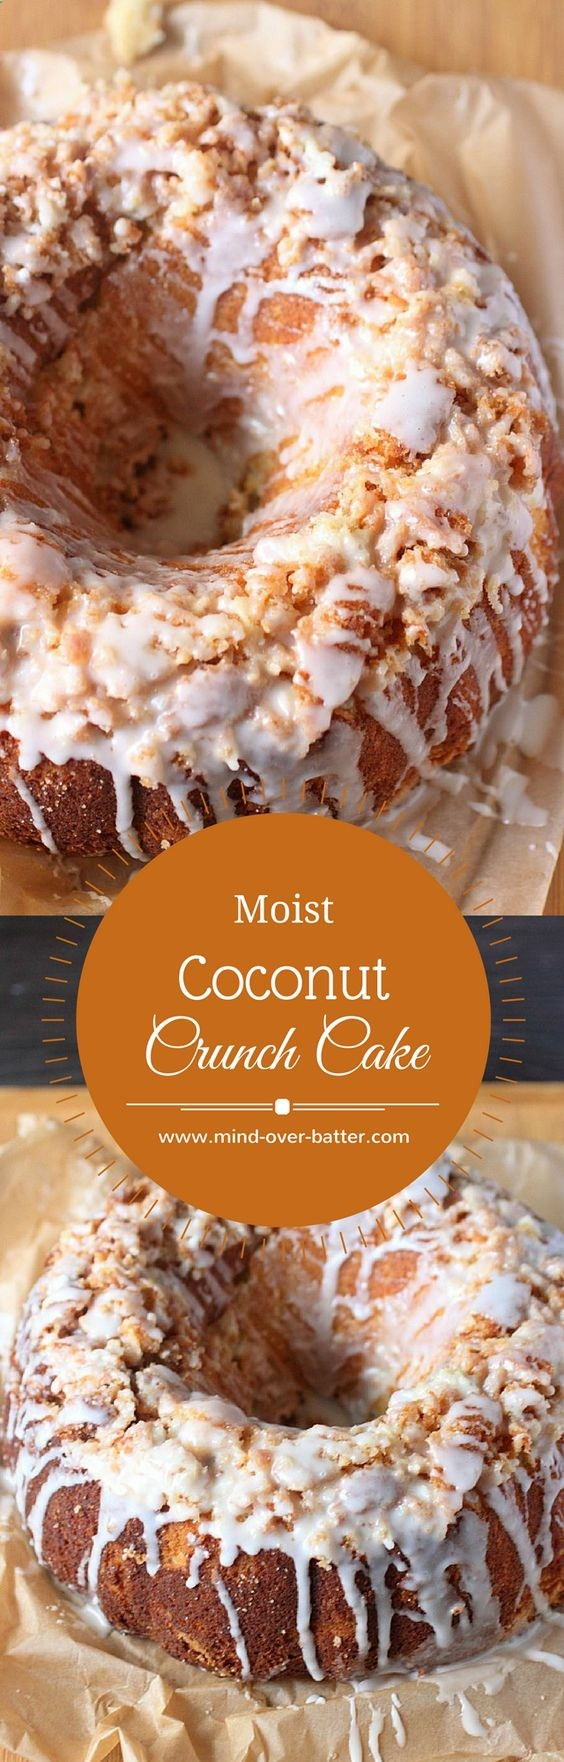 Moist Coconut Crunch Cake www.mindoverbat... Crunch